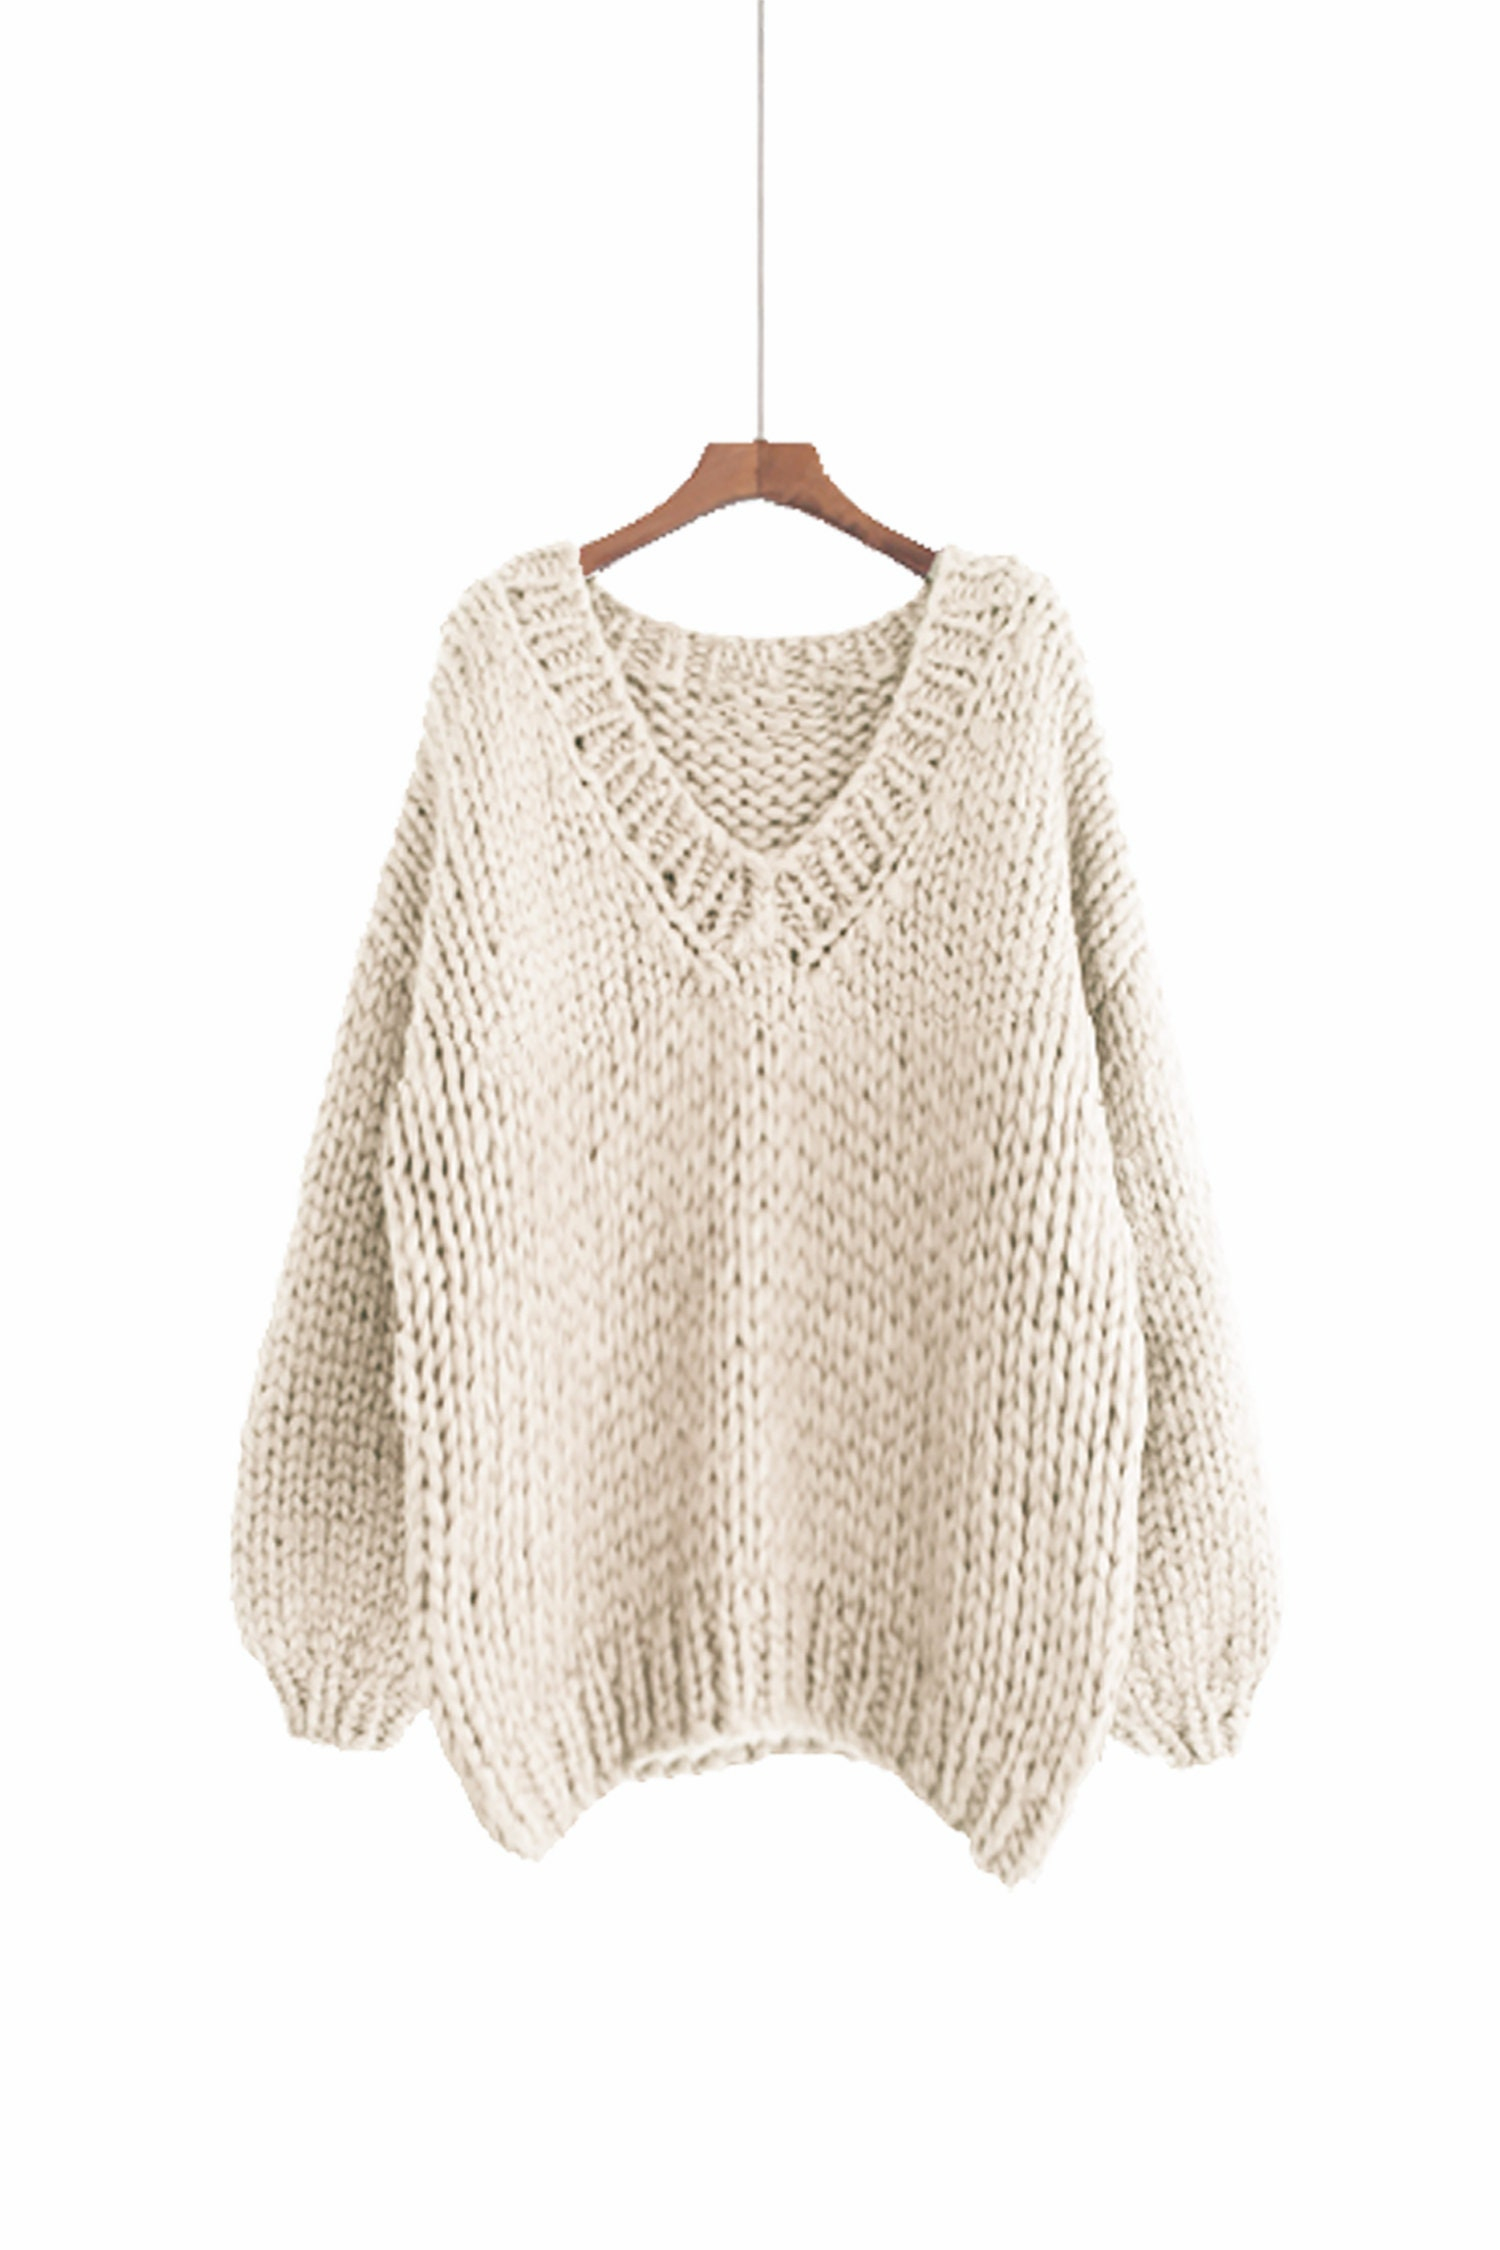 3fc1313d8a1 Hand knit oversize woman sweater V-neck slouchy wool white cream ...